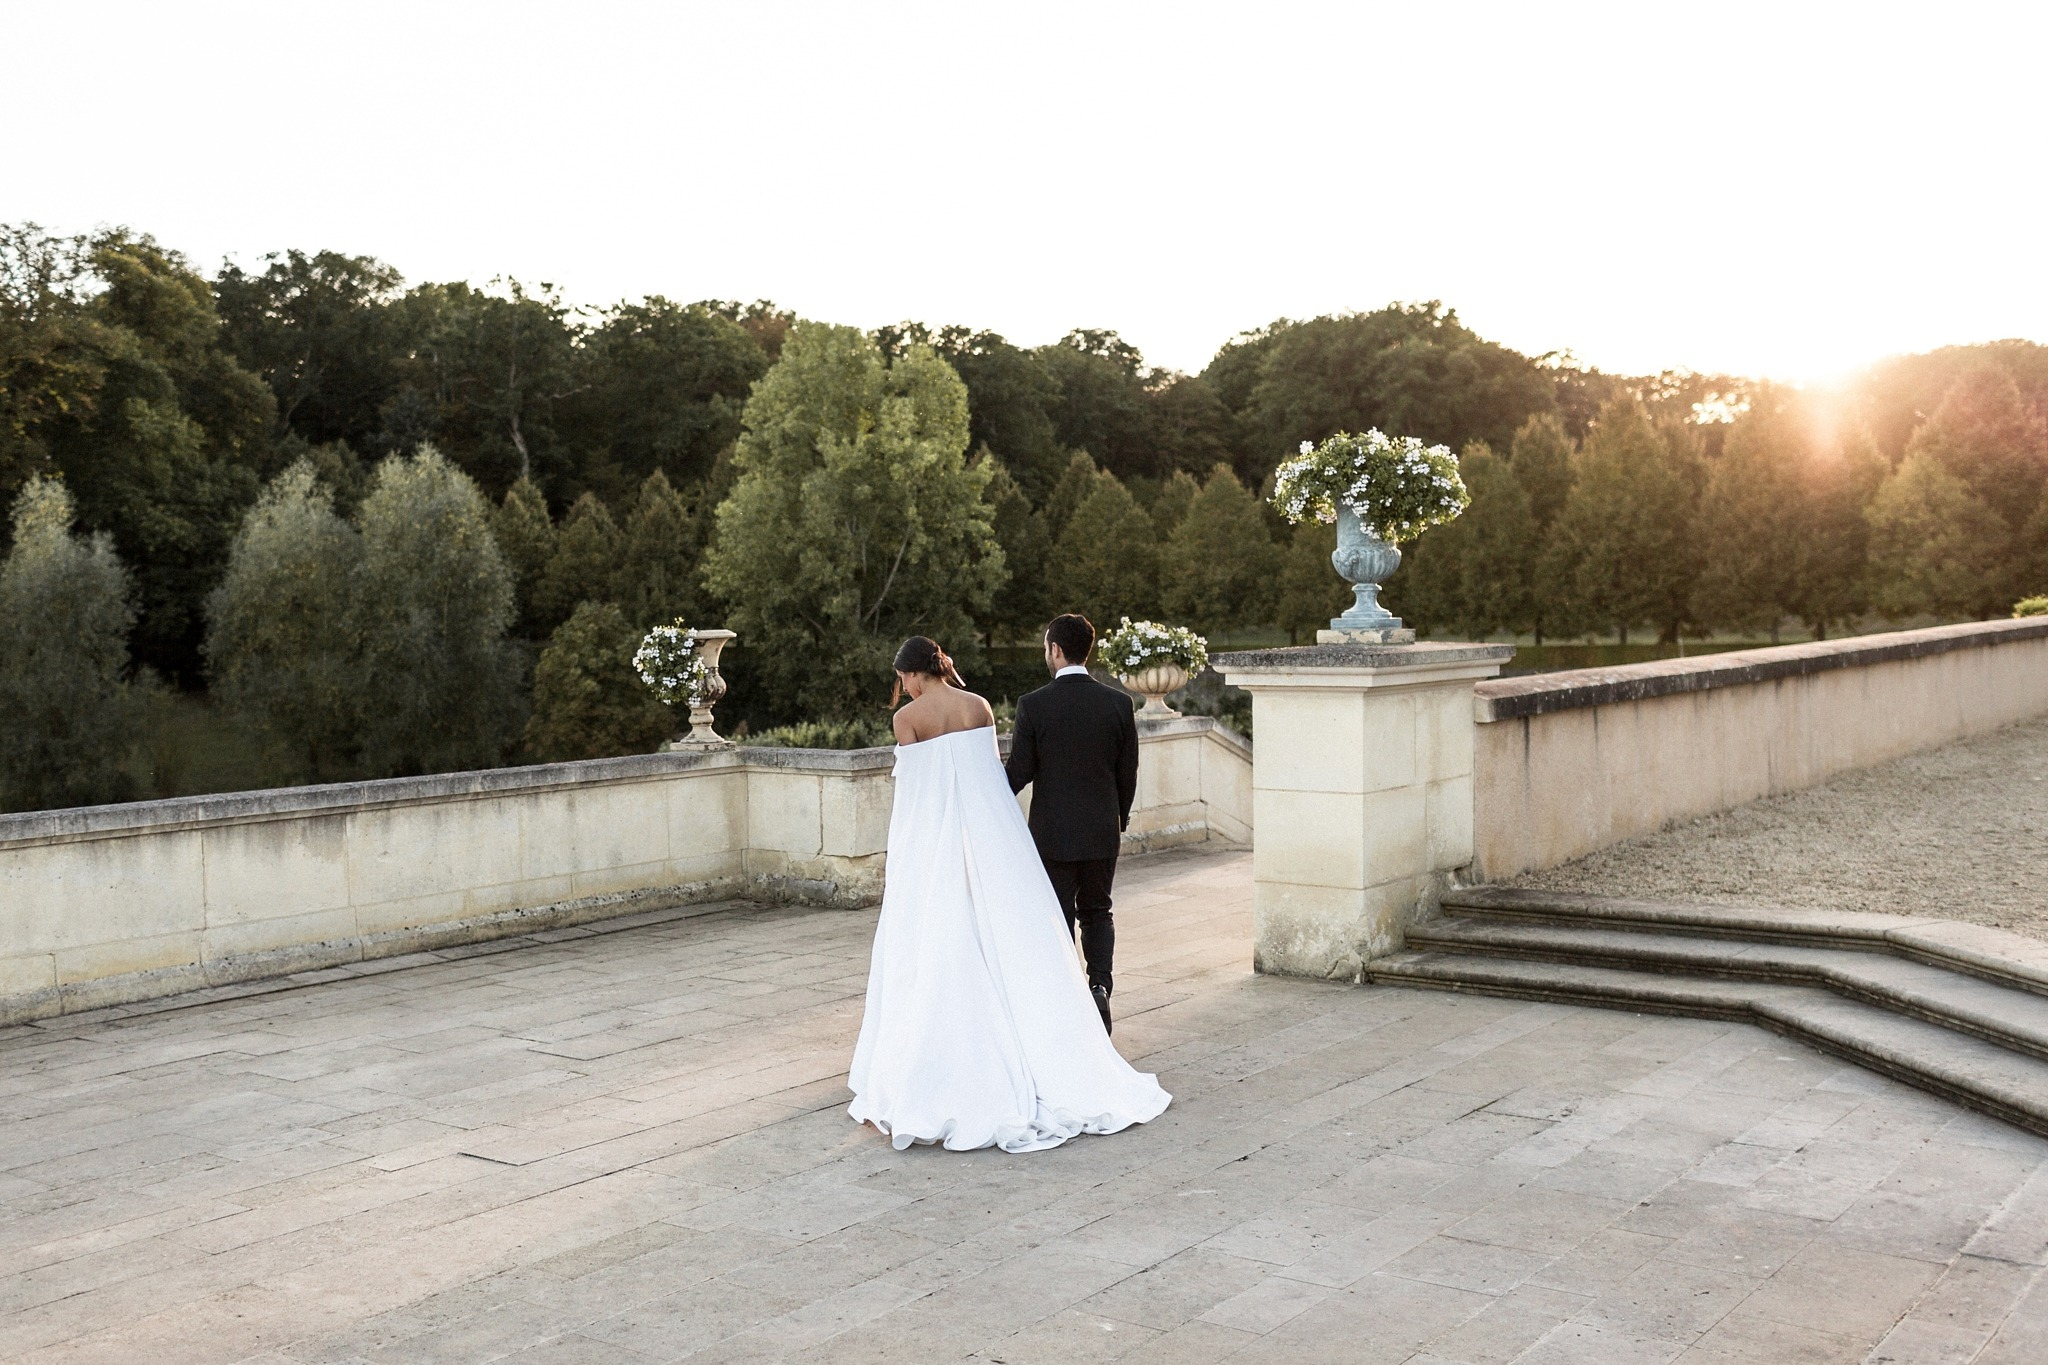 chateau-wedding-france-chanel-eric-as-seen-on-vogue-with-sarah-falugo-photographer_0133